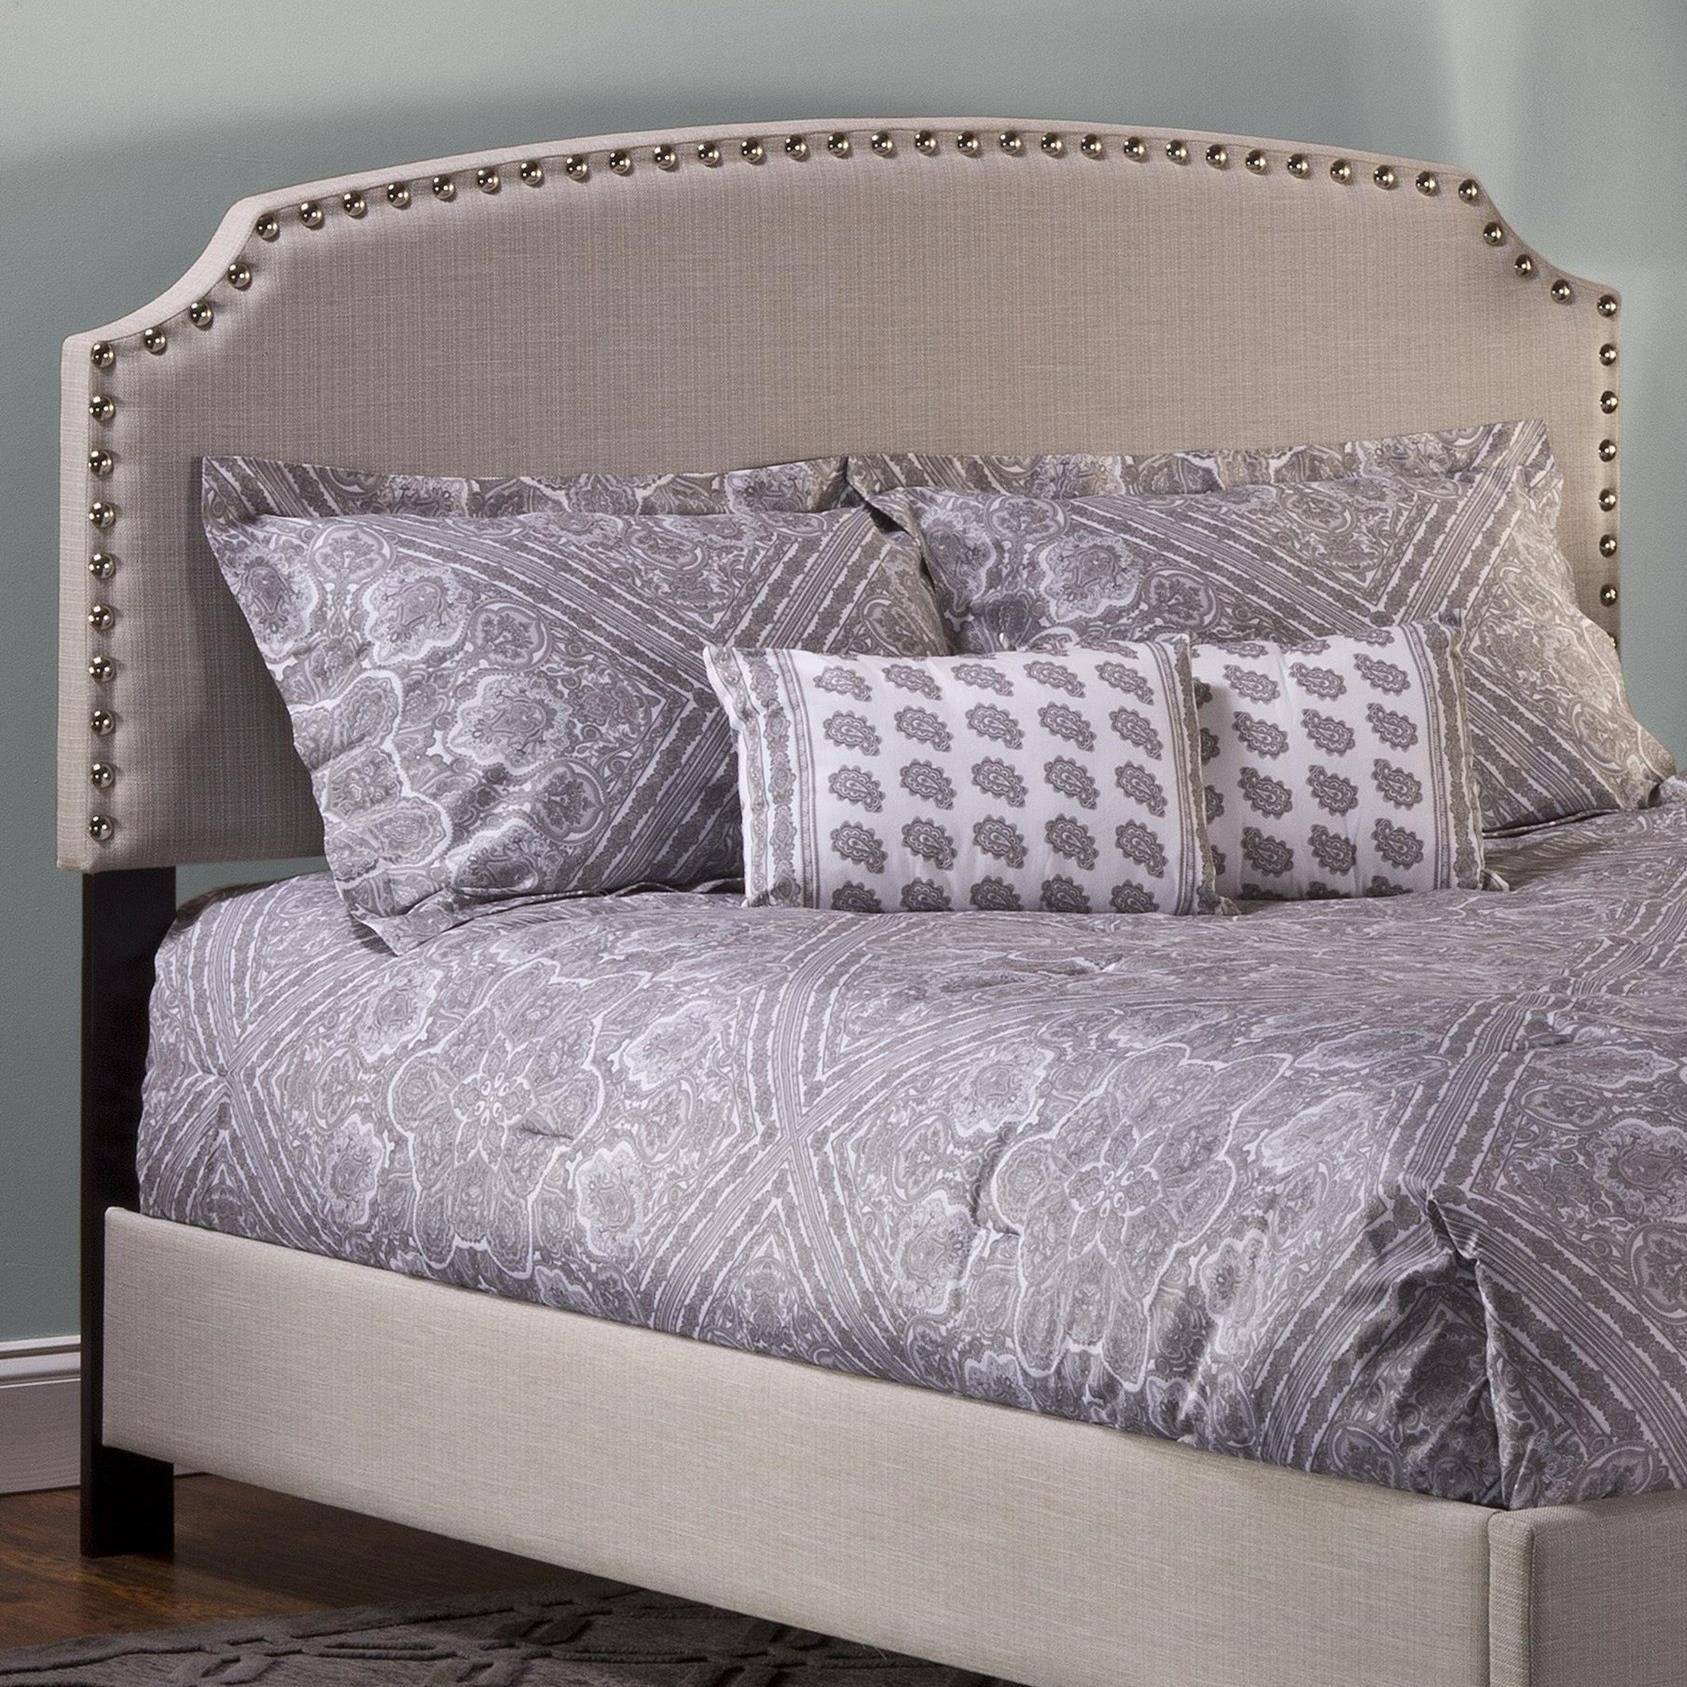 Upholstered Beds Queen Lani Headboard at Ruby Gordon Home